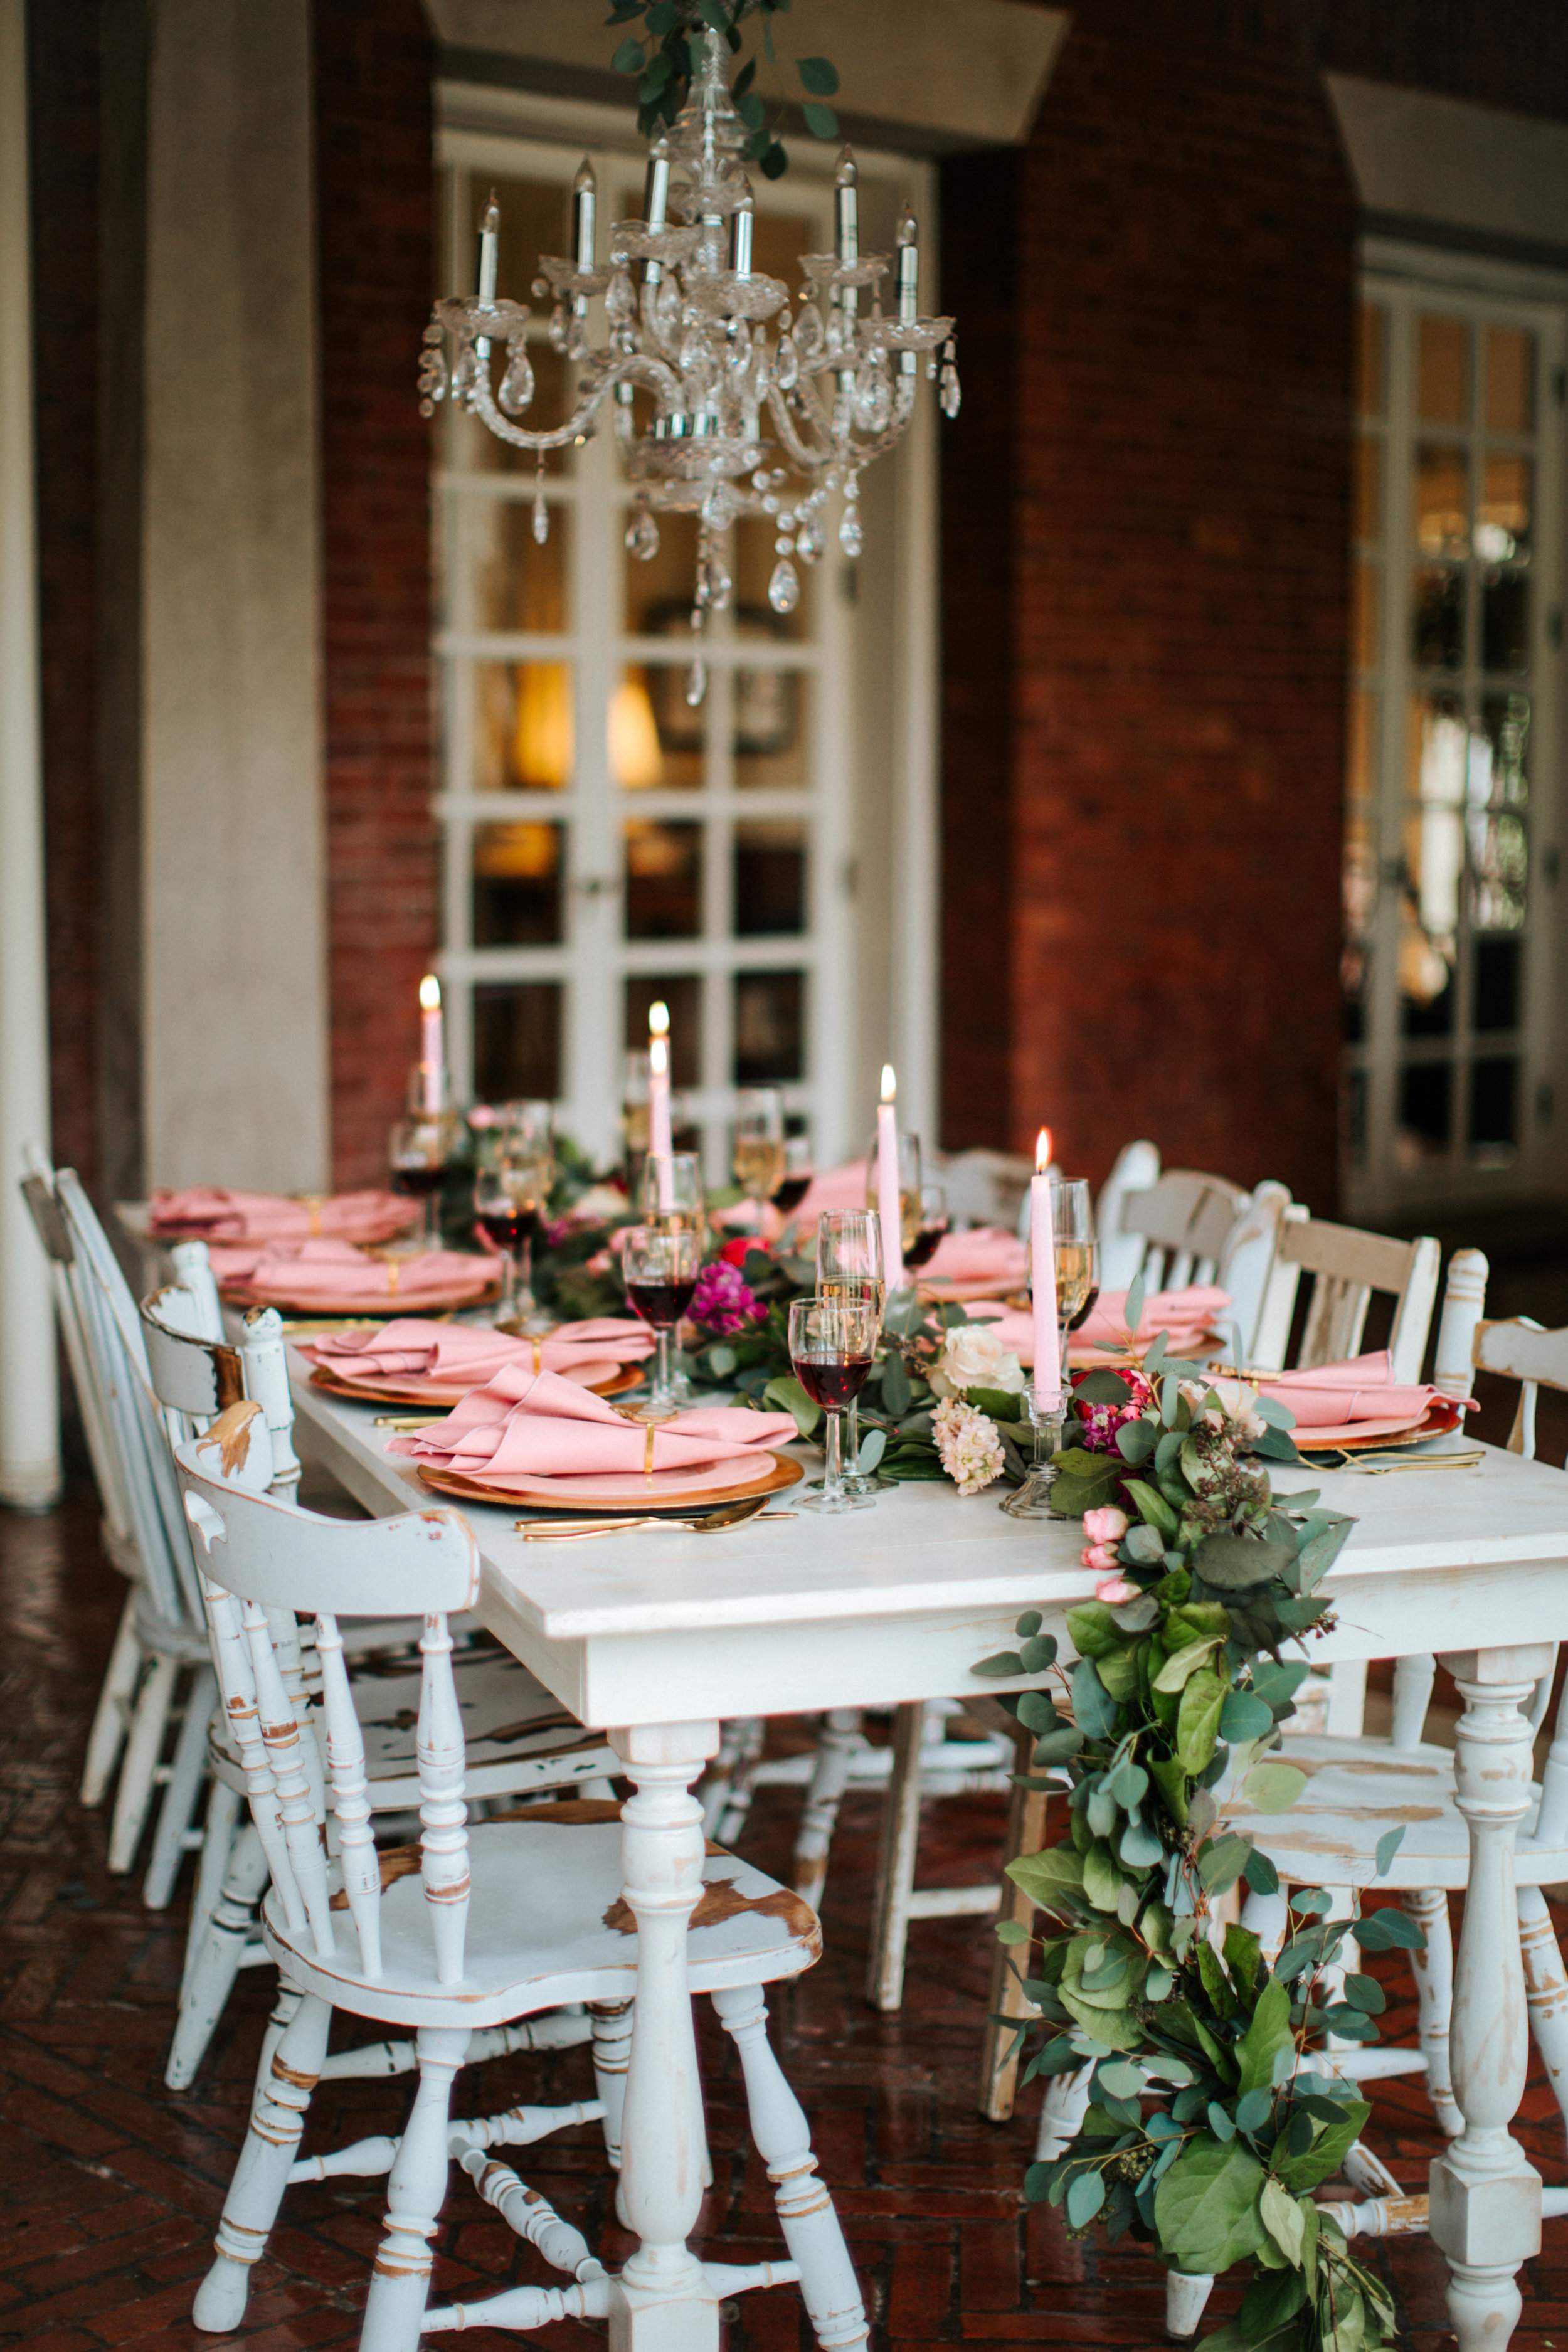 Spruce Rentals - Allerton Park with Kristen Winkler Photography, Hoop House Creative, Pollen & Pastry, Southern Magnolias Events